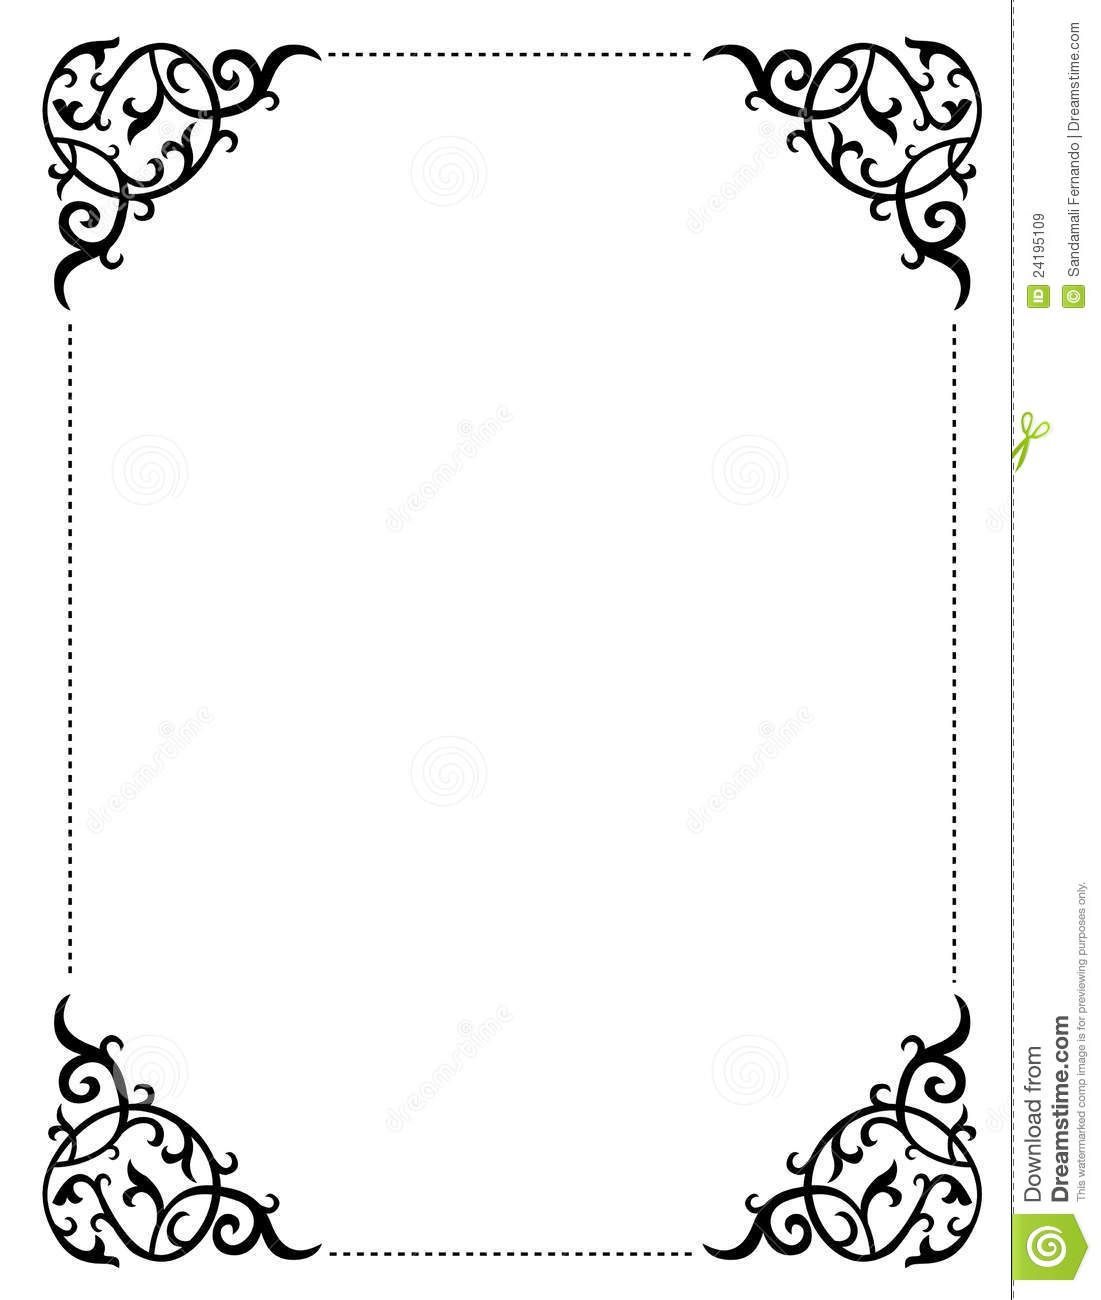 medium resolution of free printable wedding clip art borders and backgrounds invitation